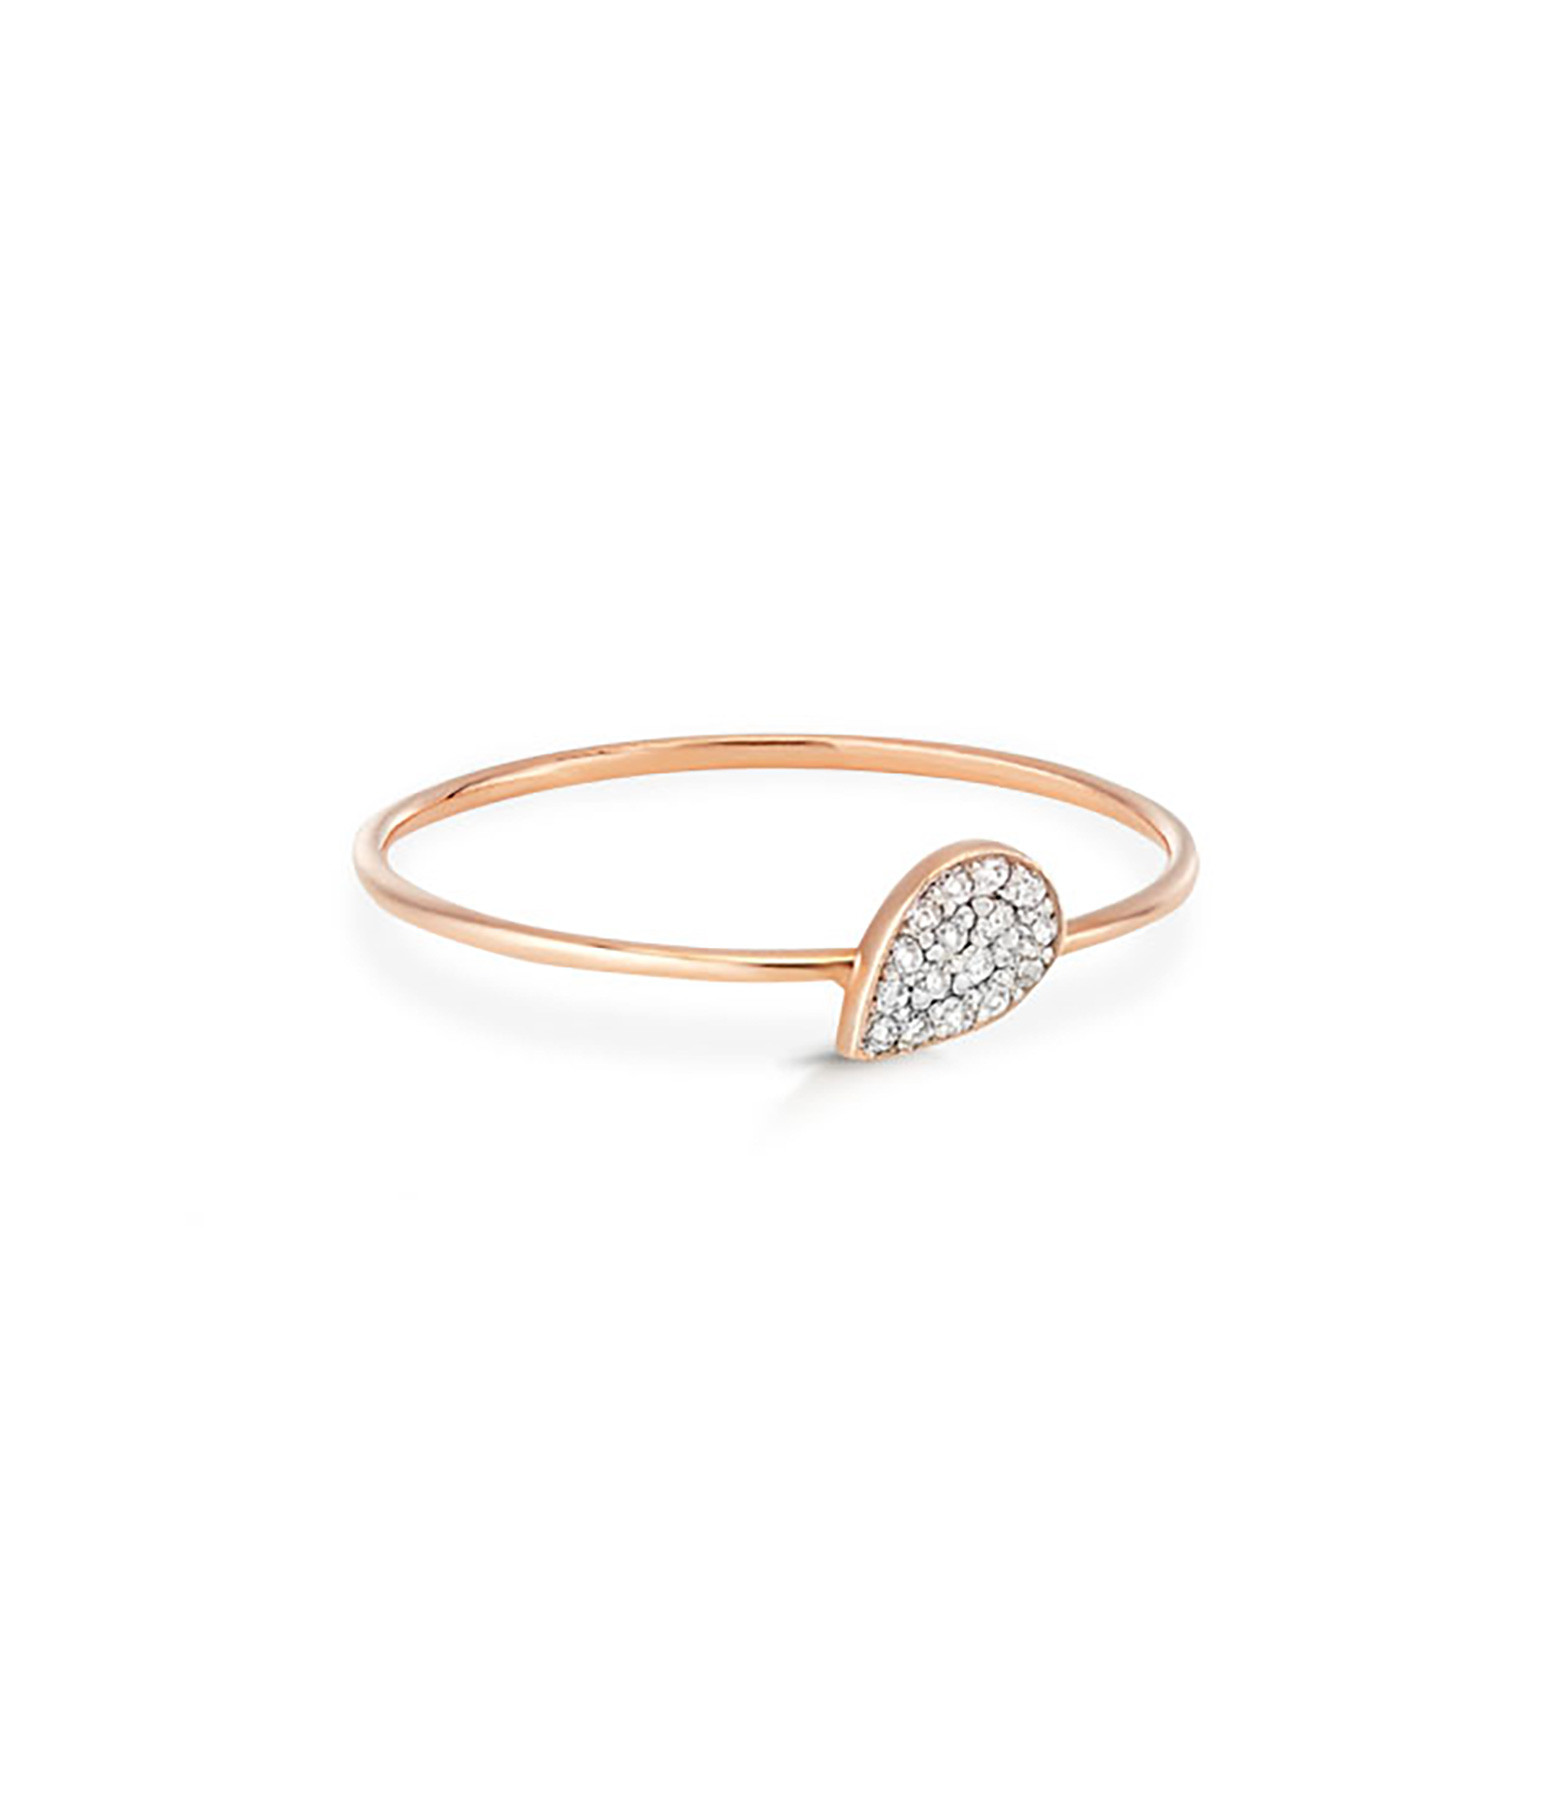 GINETTE NY - Bague Bliss Diamants Or Rose